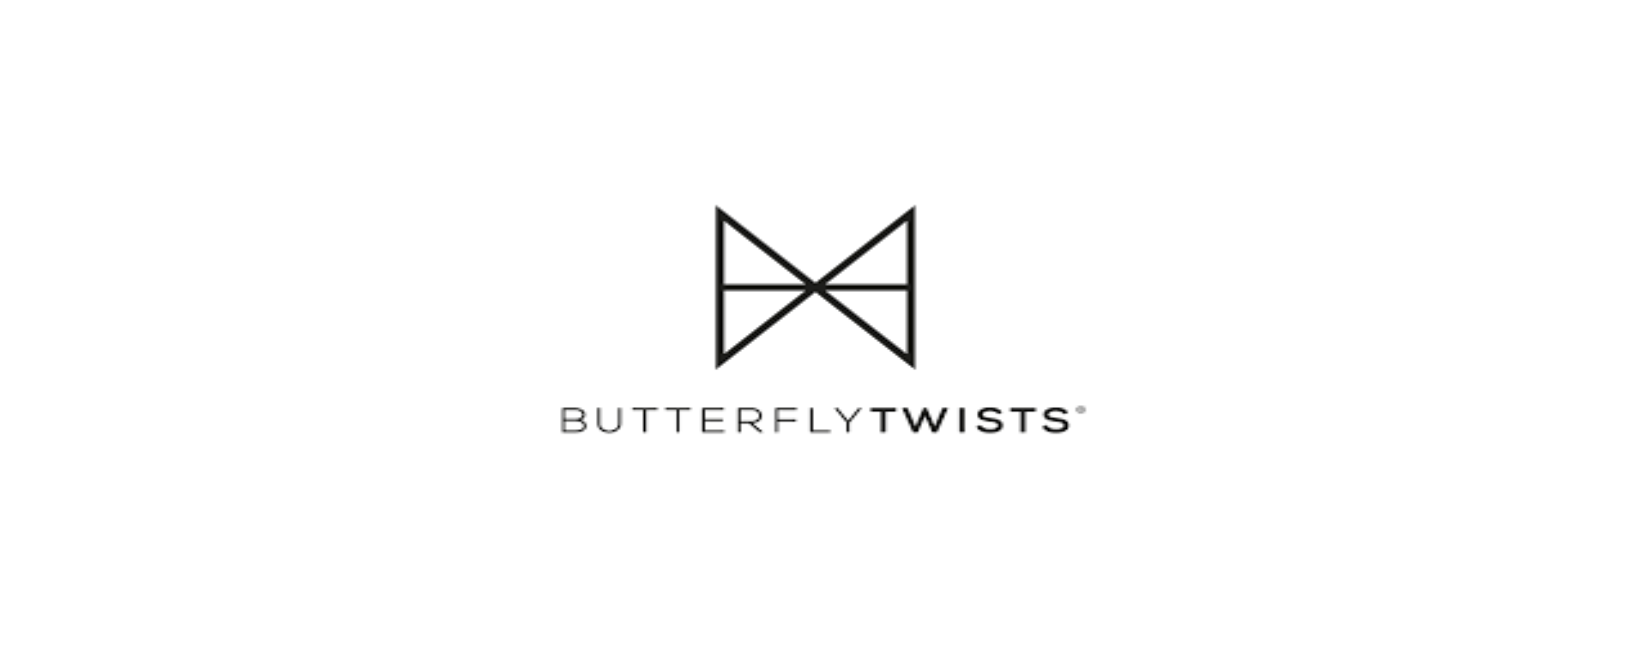 Butterfly Twists Discount Code 2021